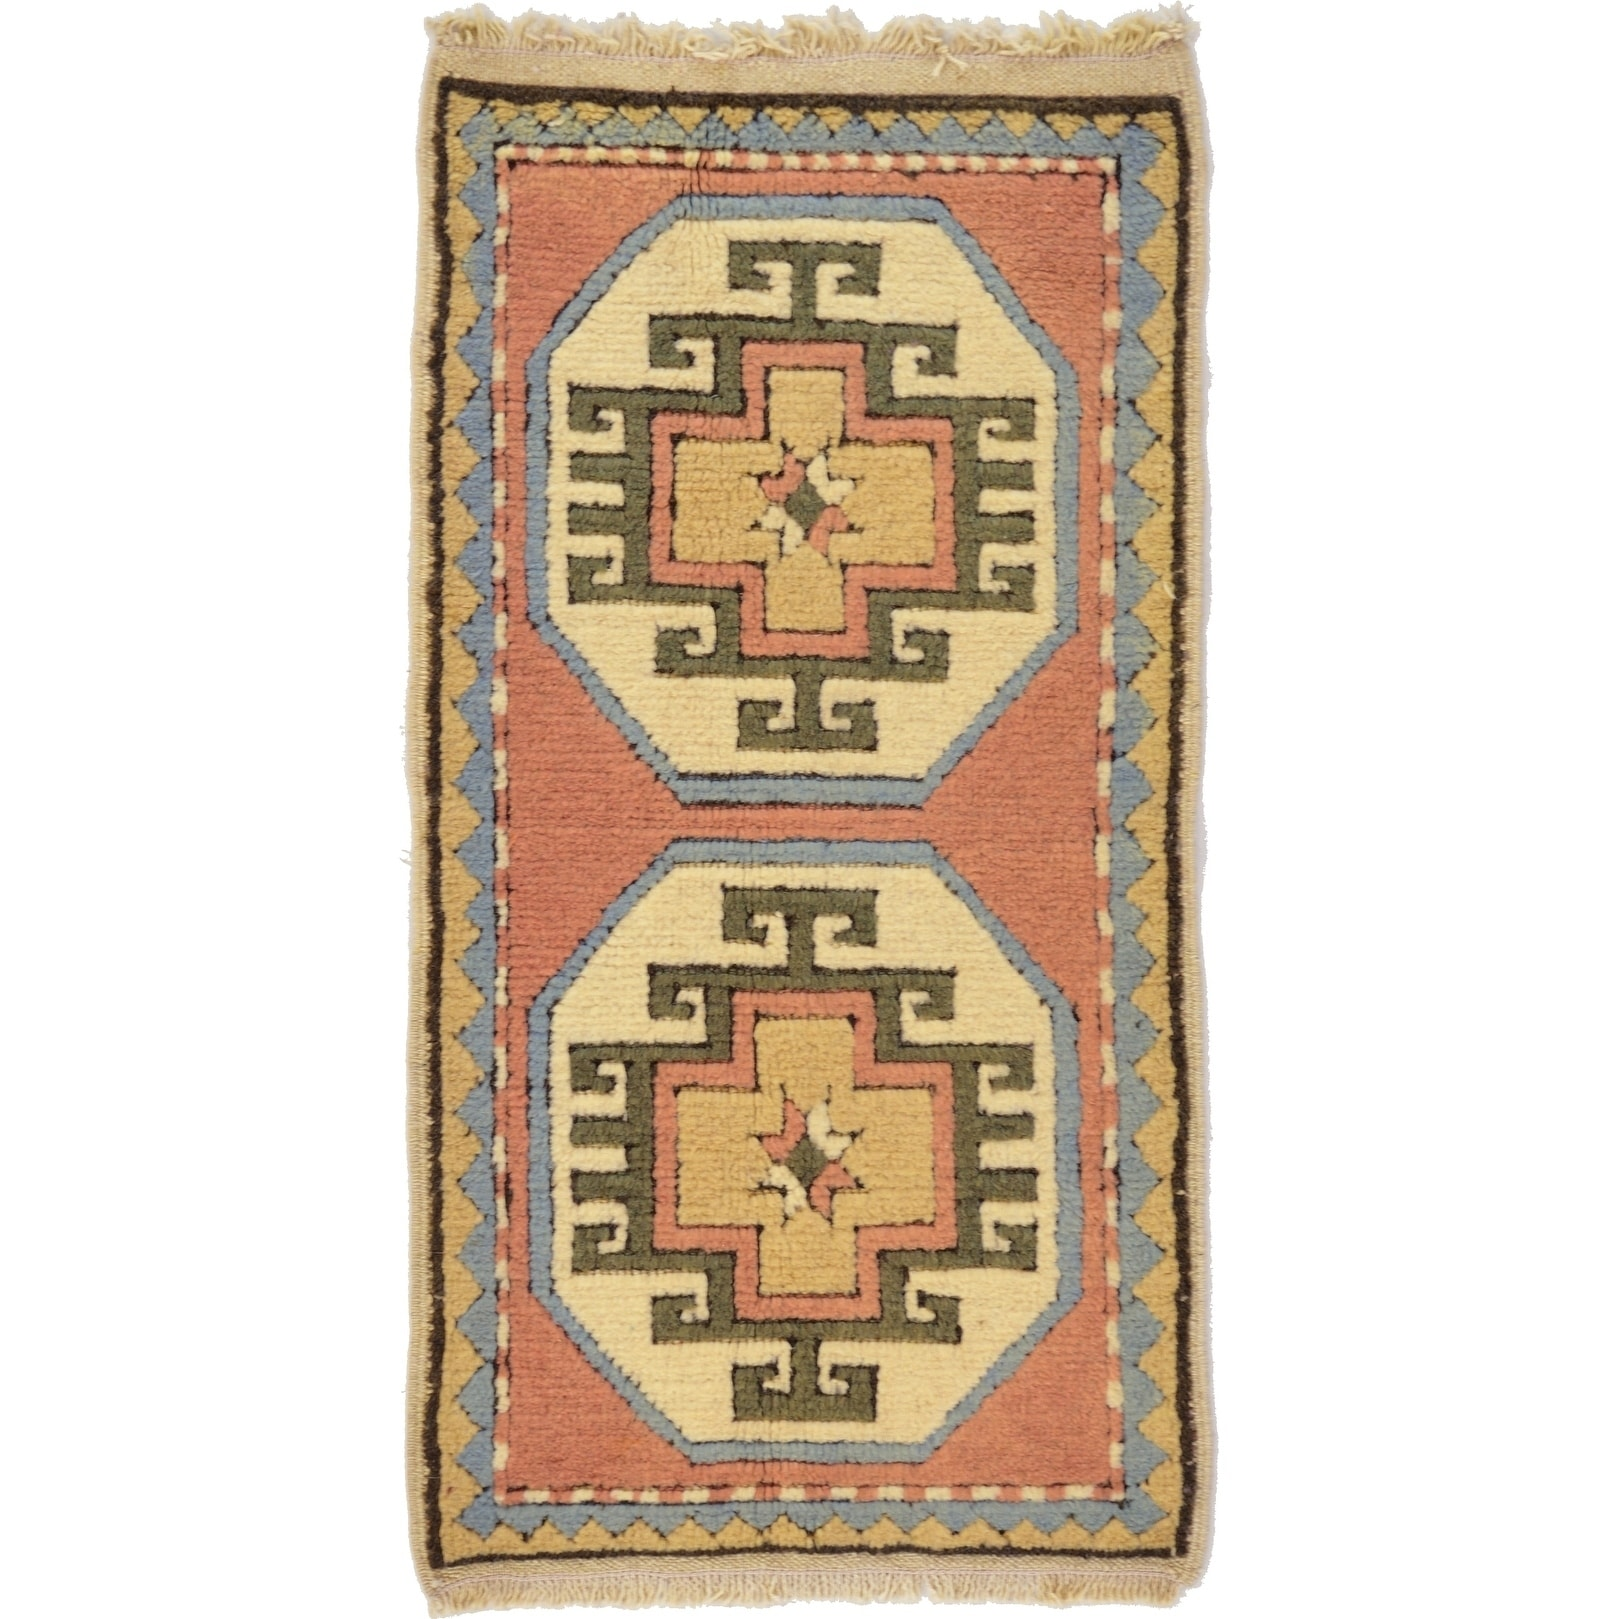 Hand Knotted Kars Wool Area Rug - 1' 9 x 3' 3 (puce - 1' 9 x 3' 3)